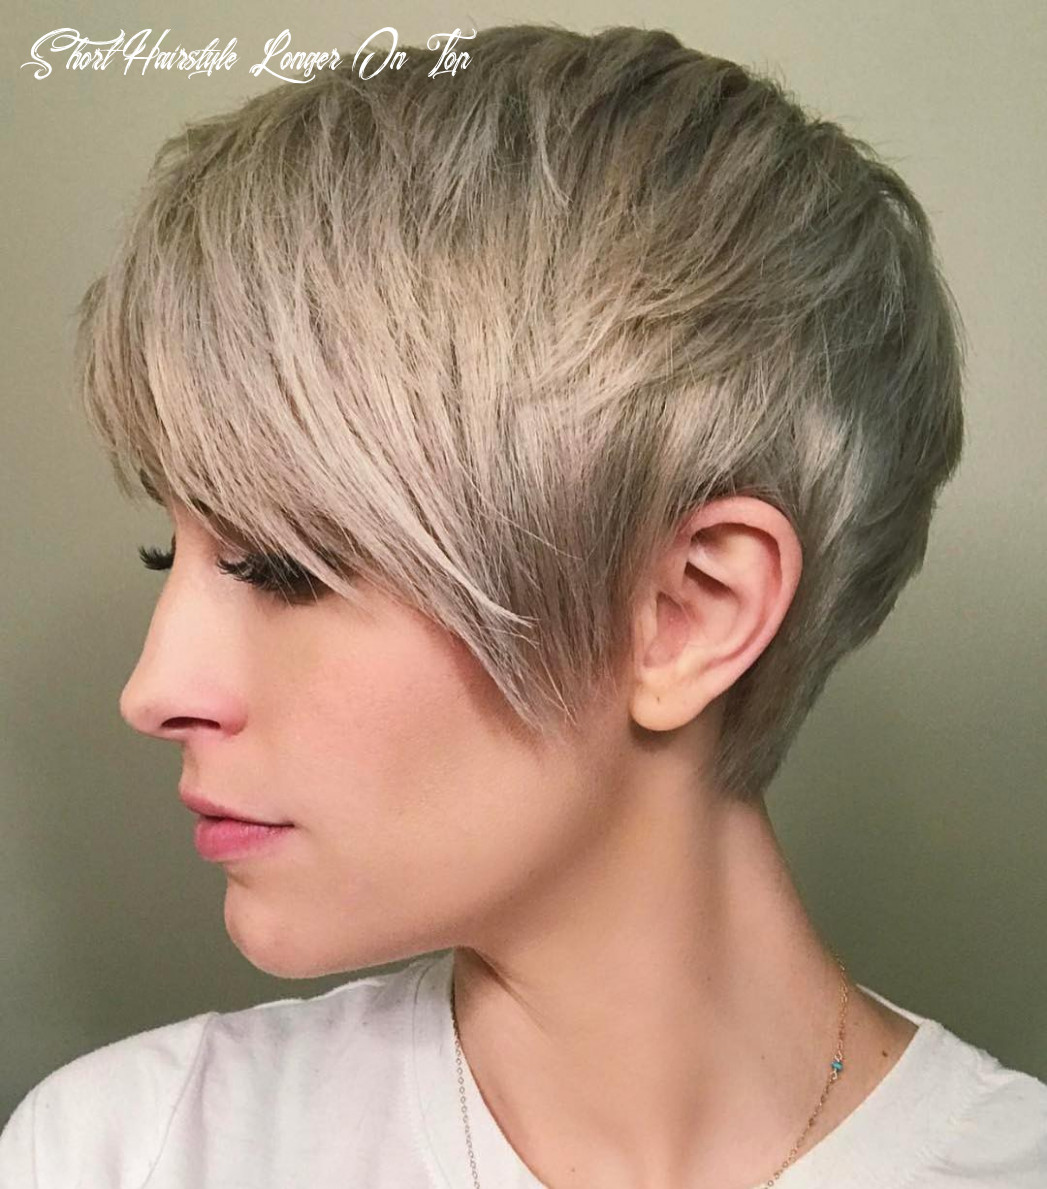 11 best short straight hairstyle trends 11 short hairstyle longer on top